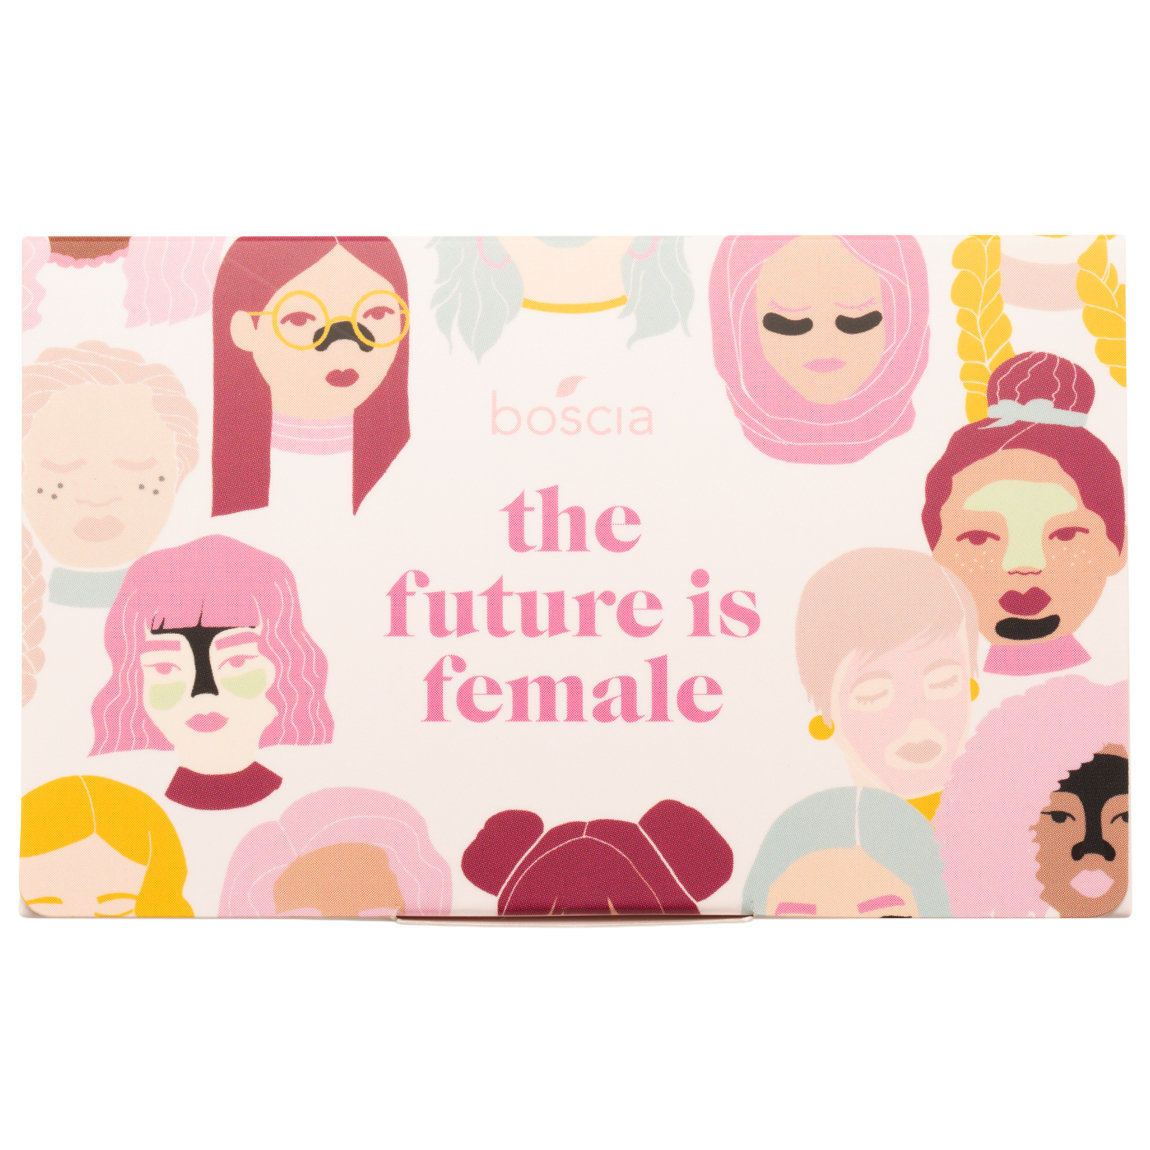 boscia The Future Is Female Blotting Linens product smear.